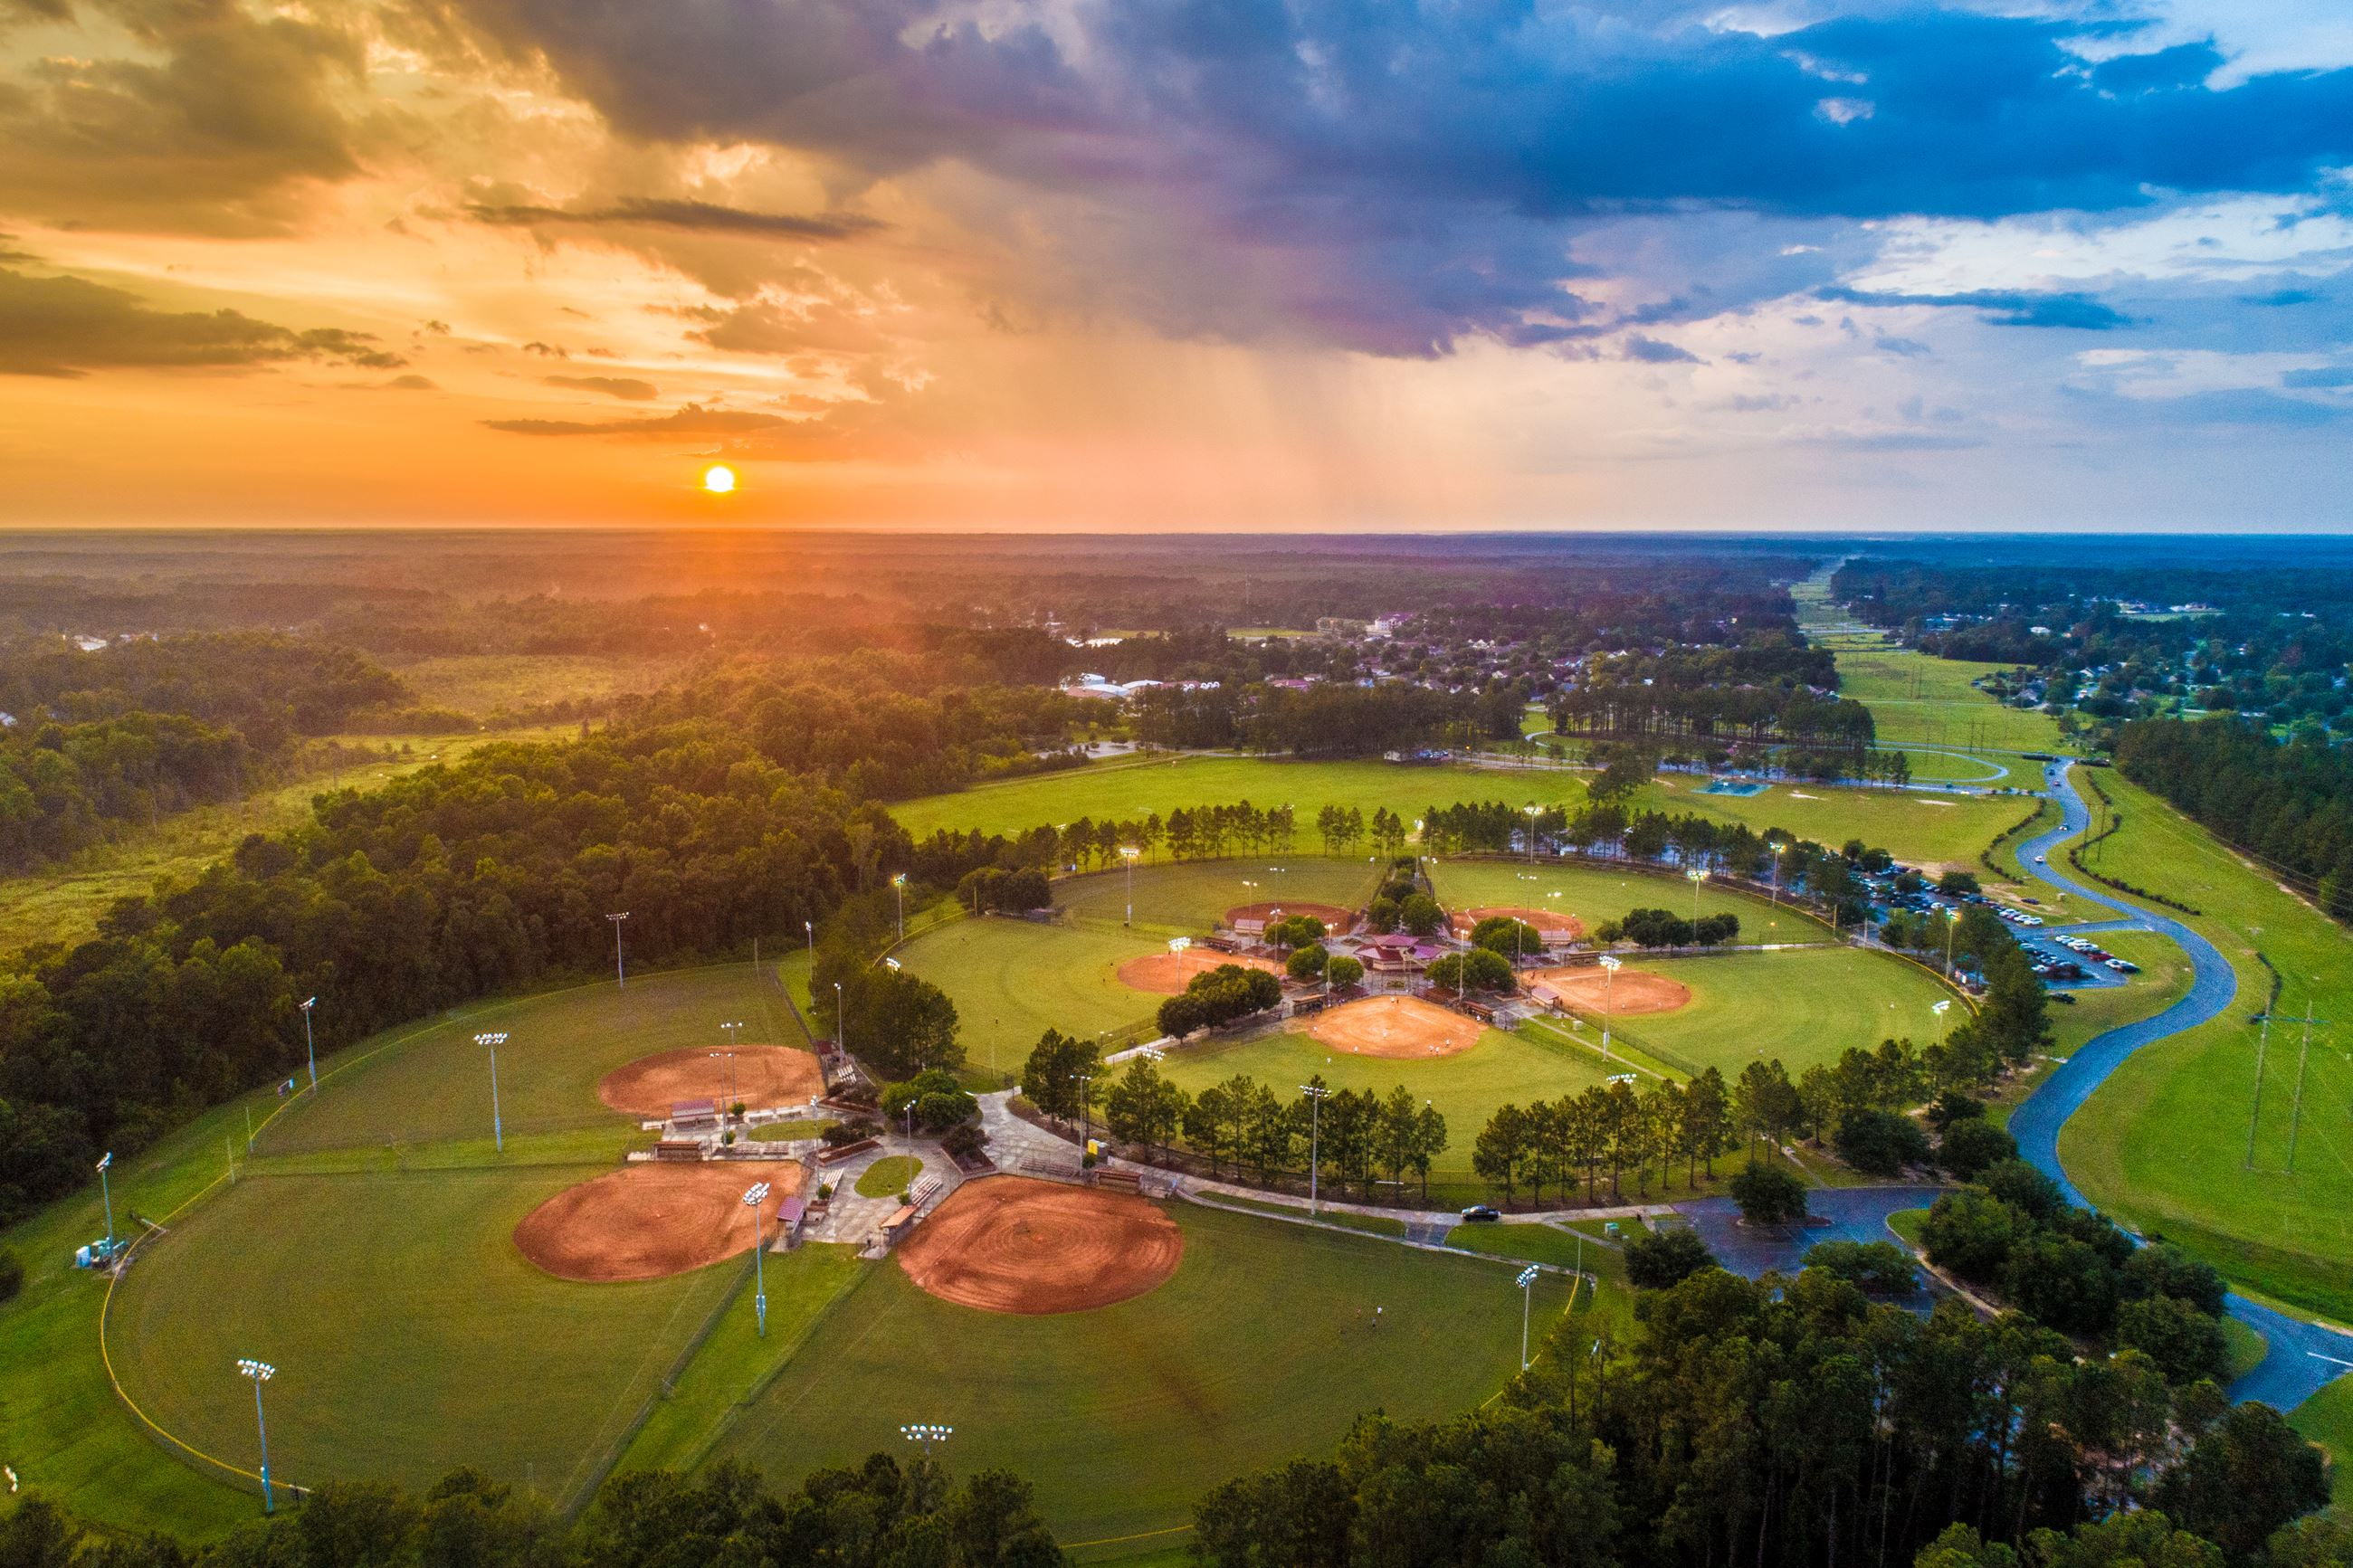 An image of an aerial view of baseball fields at sunset.